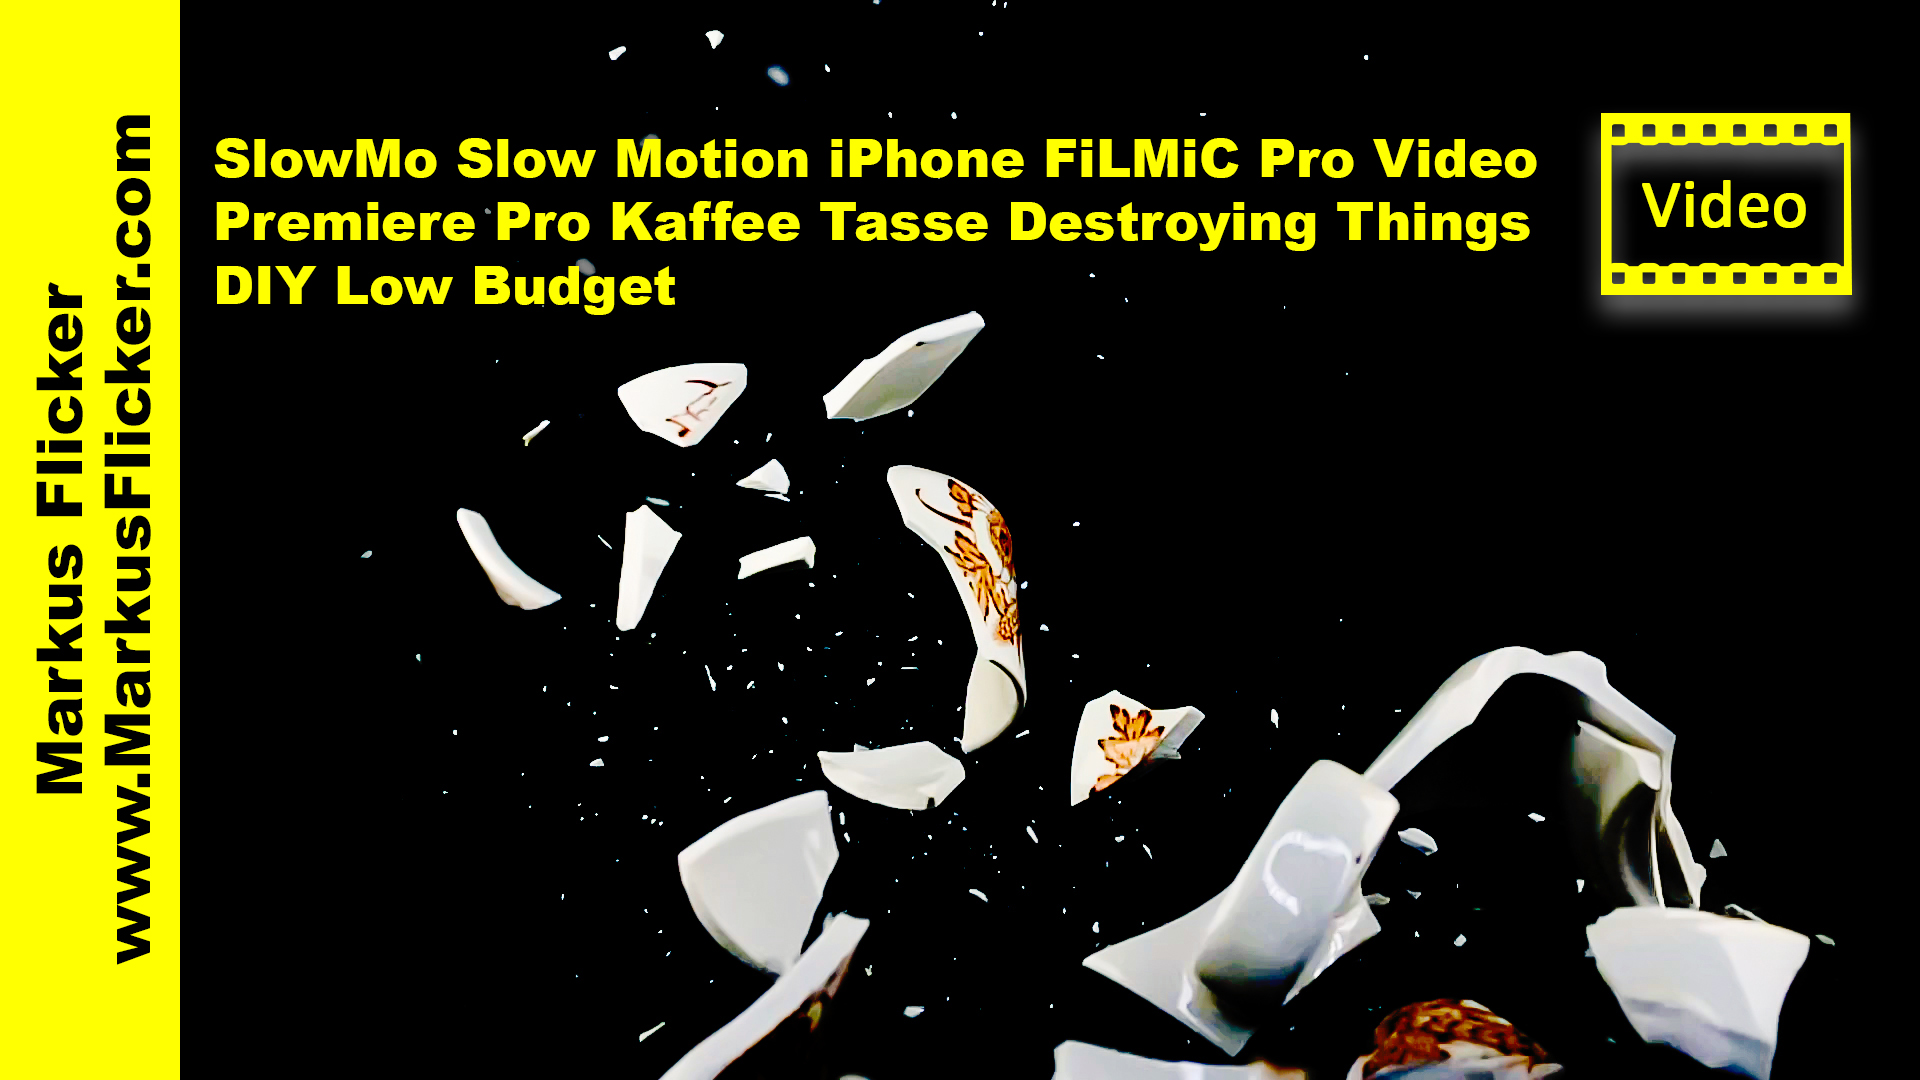 SlowMo Slow Motion iPhone FiLMiC Pro Video Premiere Pro Kaffee Tasse Destroying Things DIY Low Budget